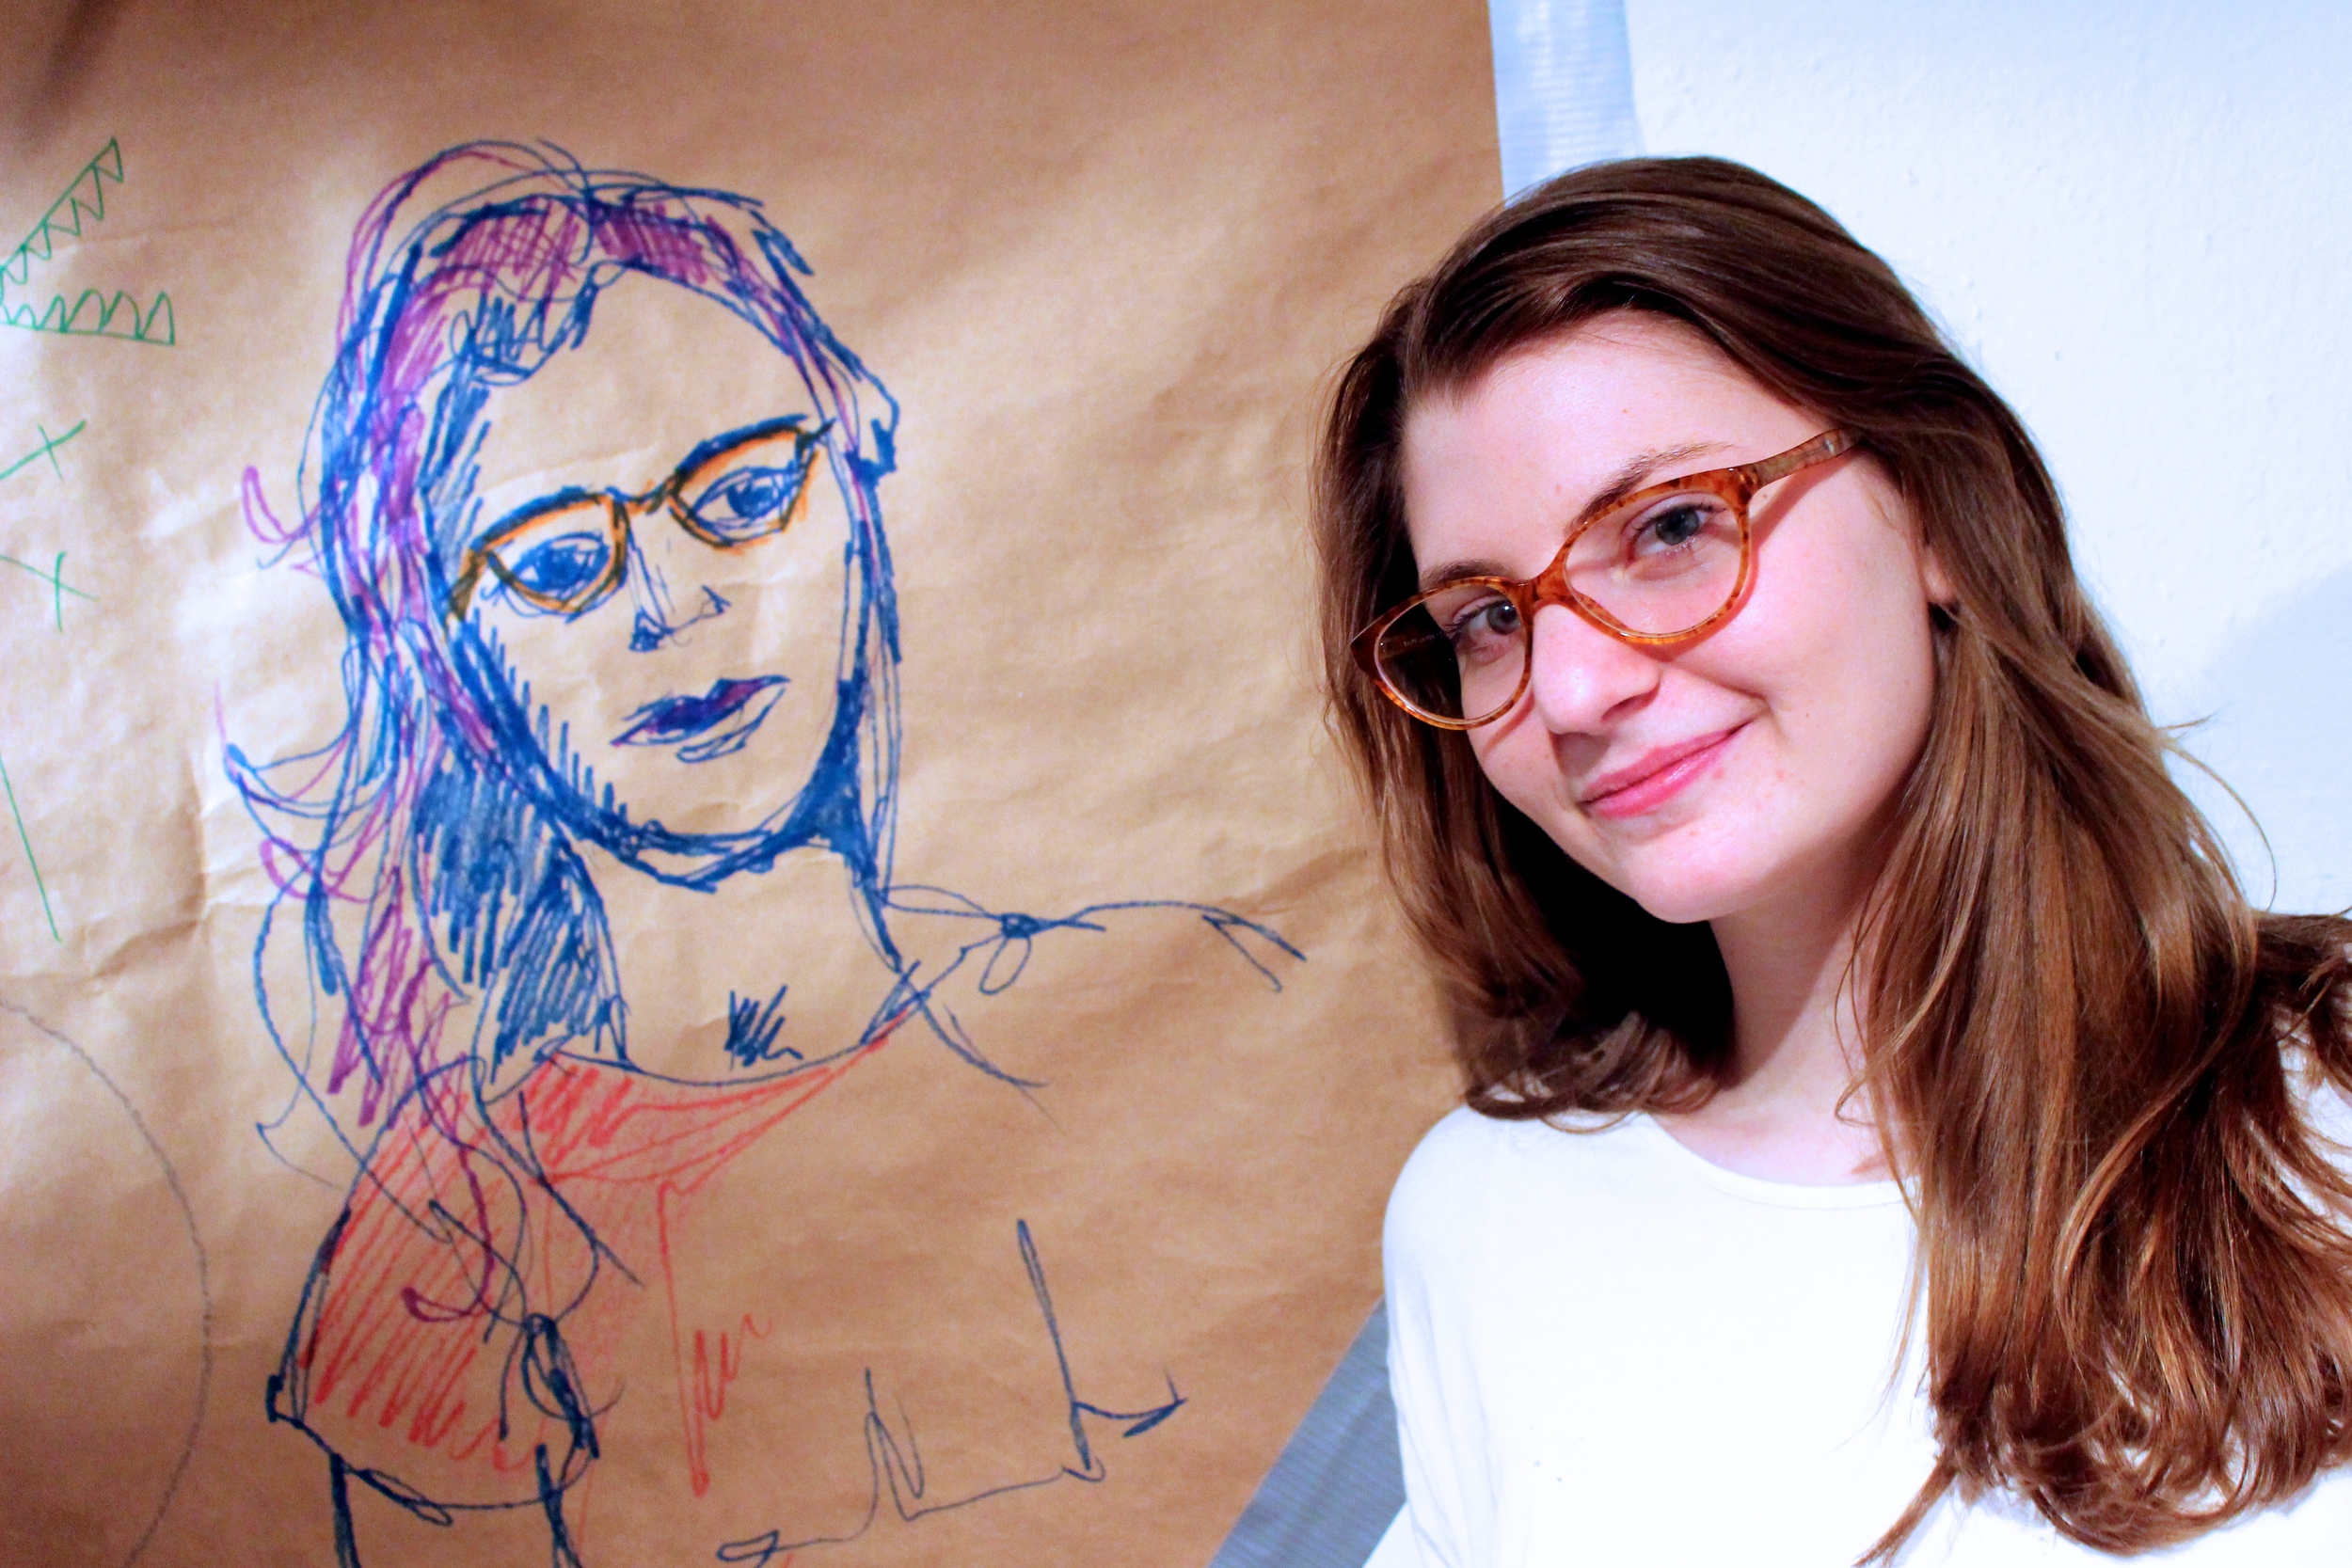 Lilly Rosner '14 poses next to a portrait done by Lili Boisrond '17